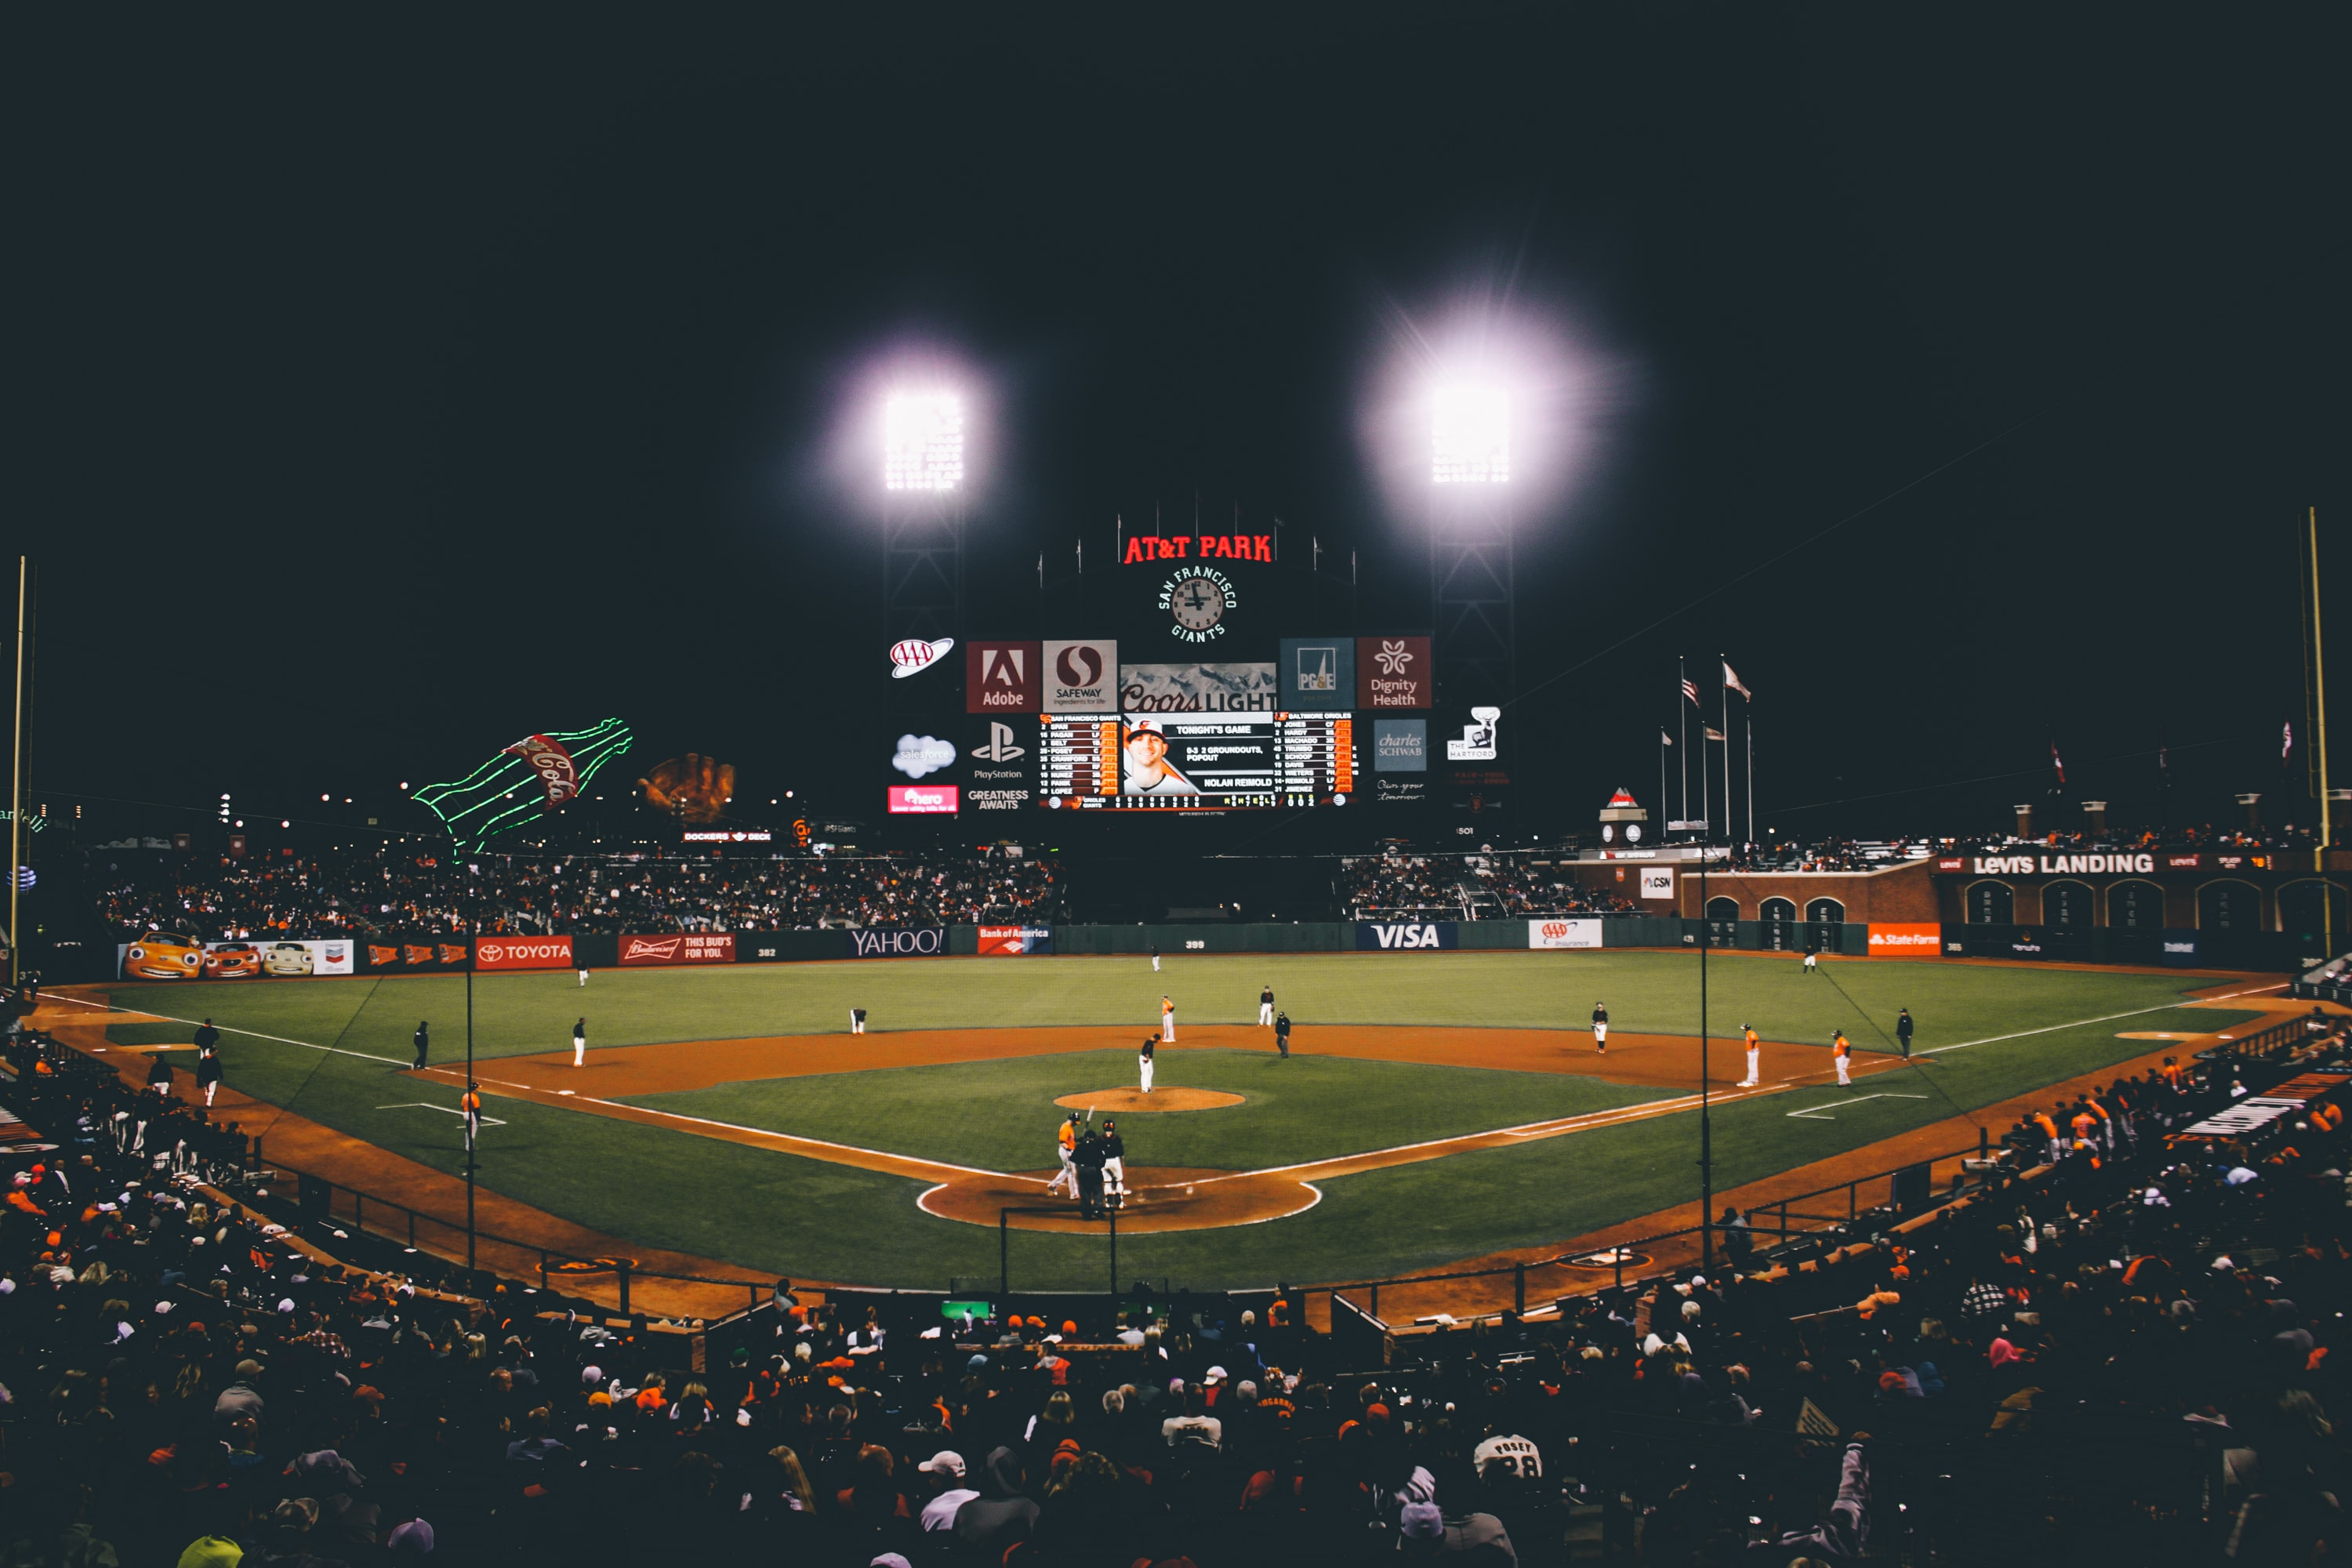 Crowd watching a baseball game at night in AT&T park in San Francisco